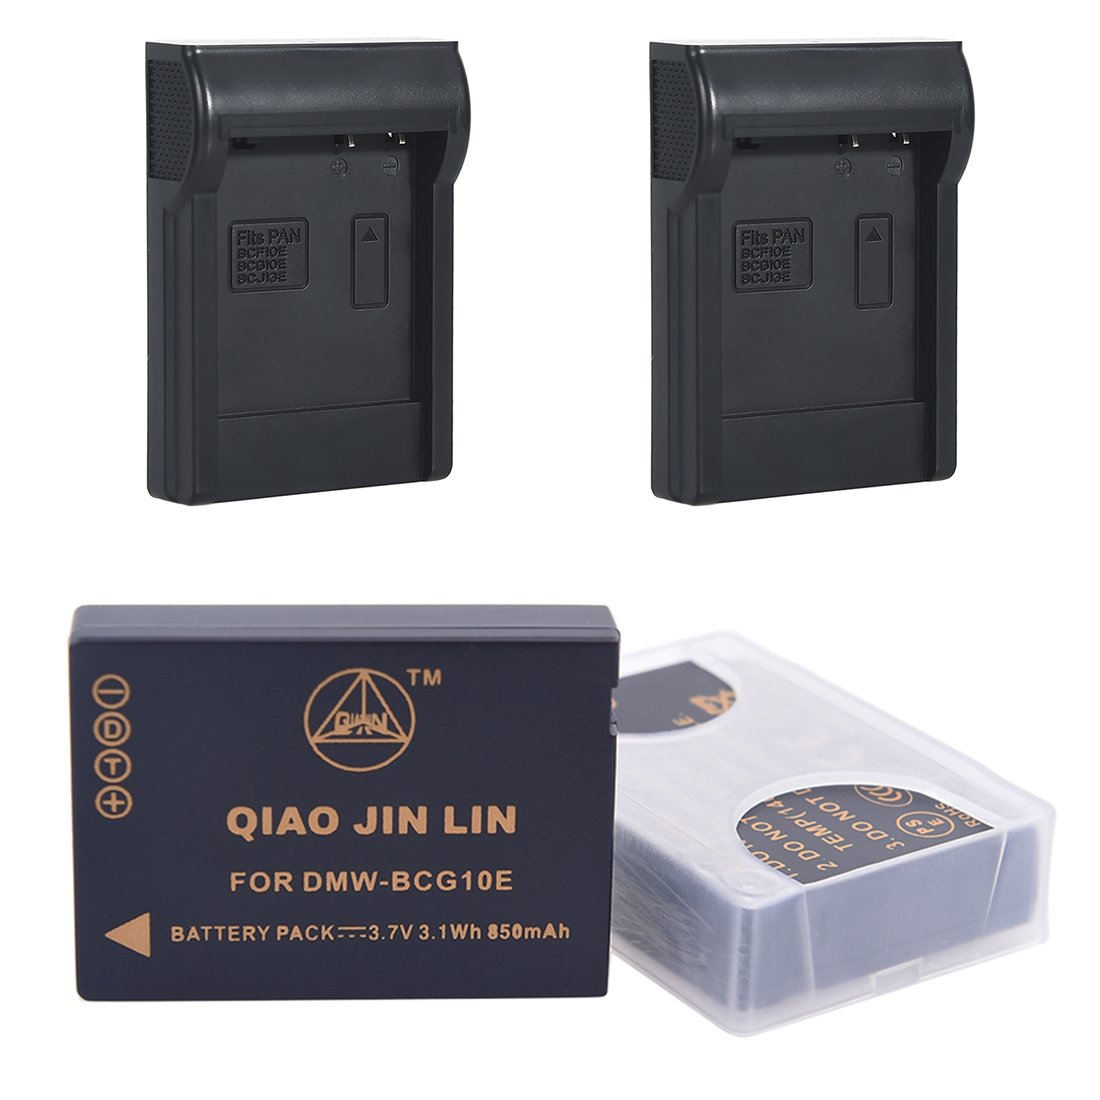 QiaoJL 2x Replacement battery pack for Panasonic DMW-BCG10 DMW-BCG10E